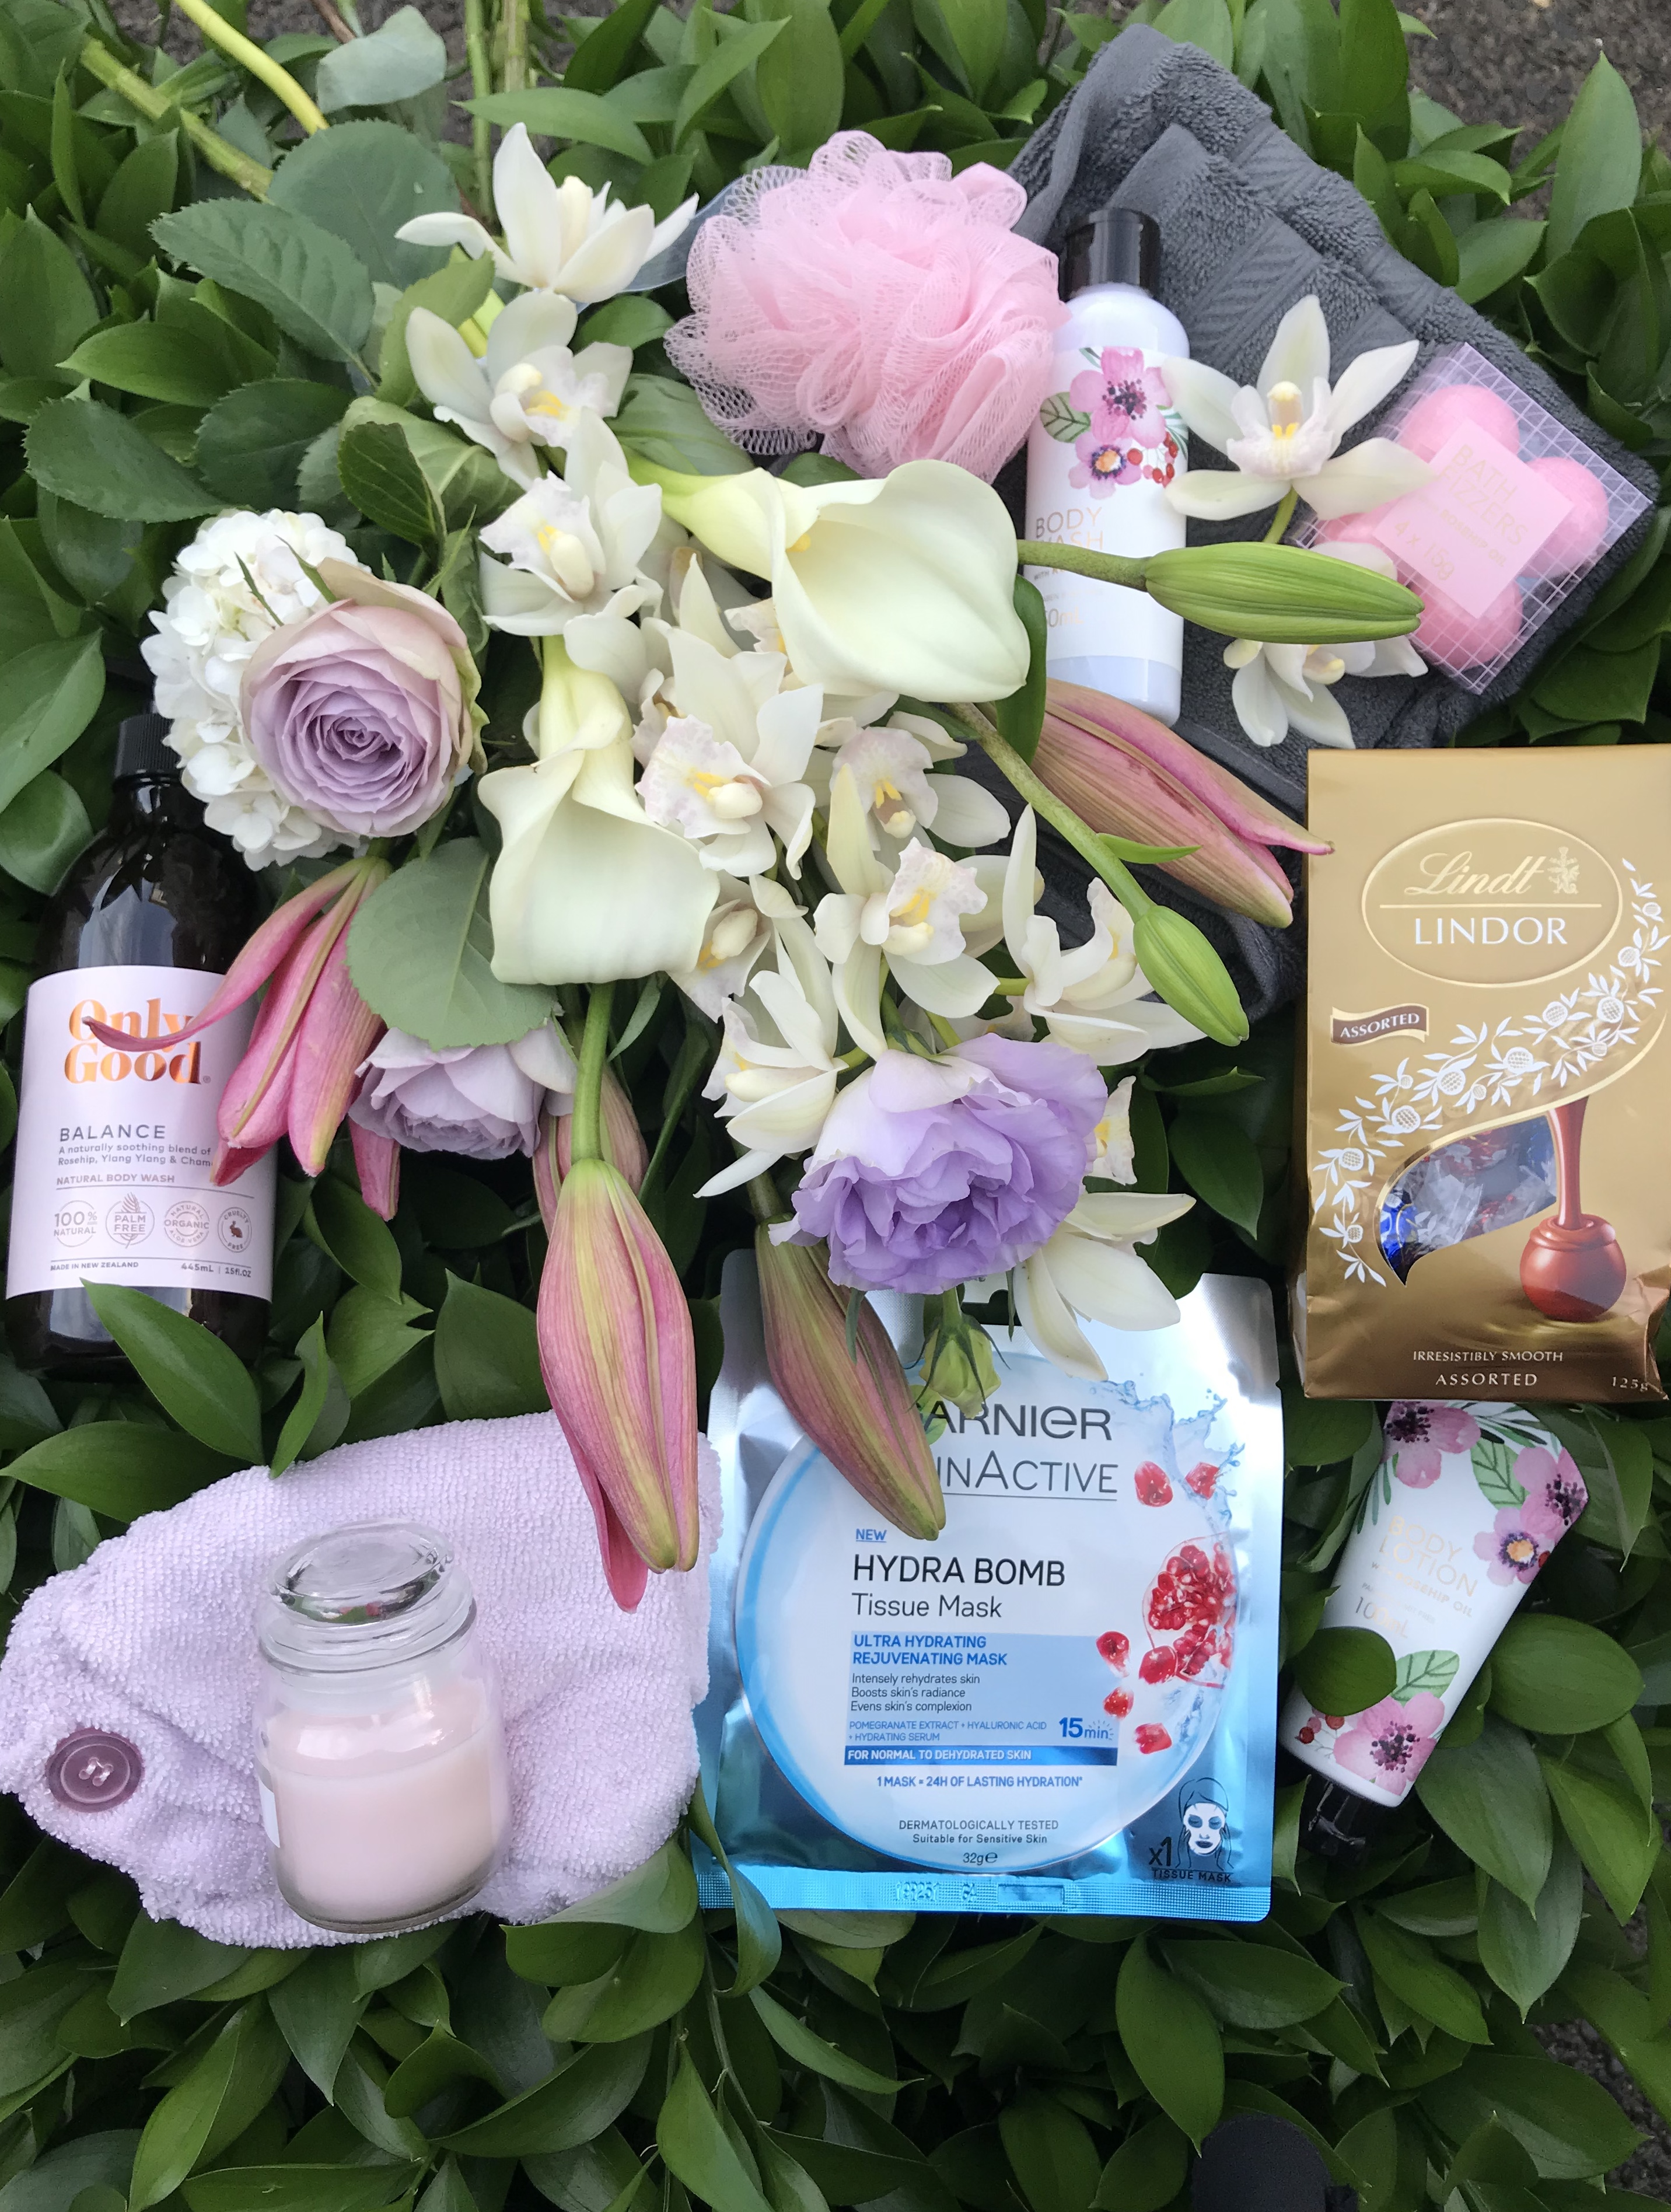 Deluxe pamper posy gift pack